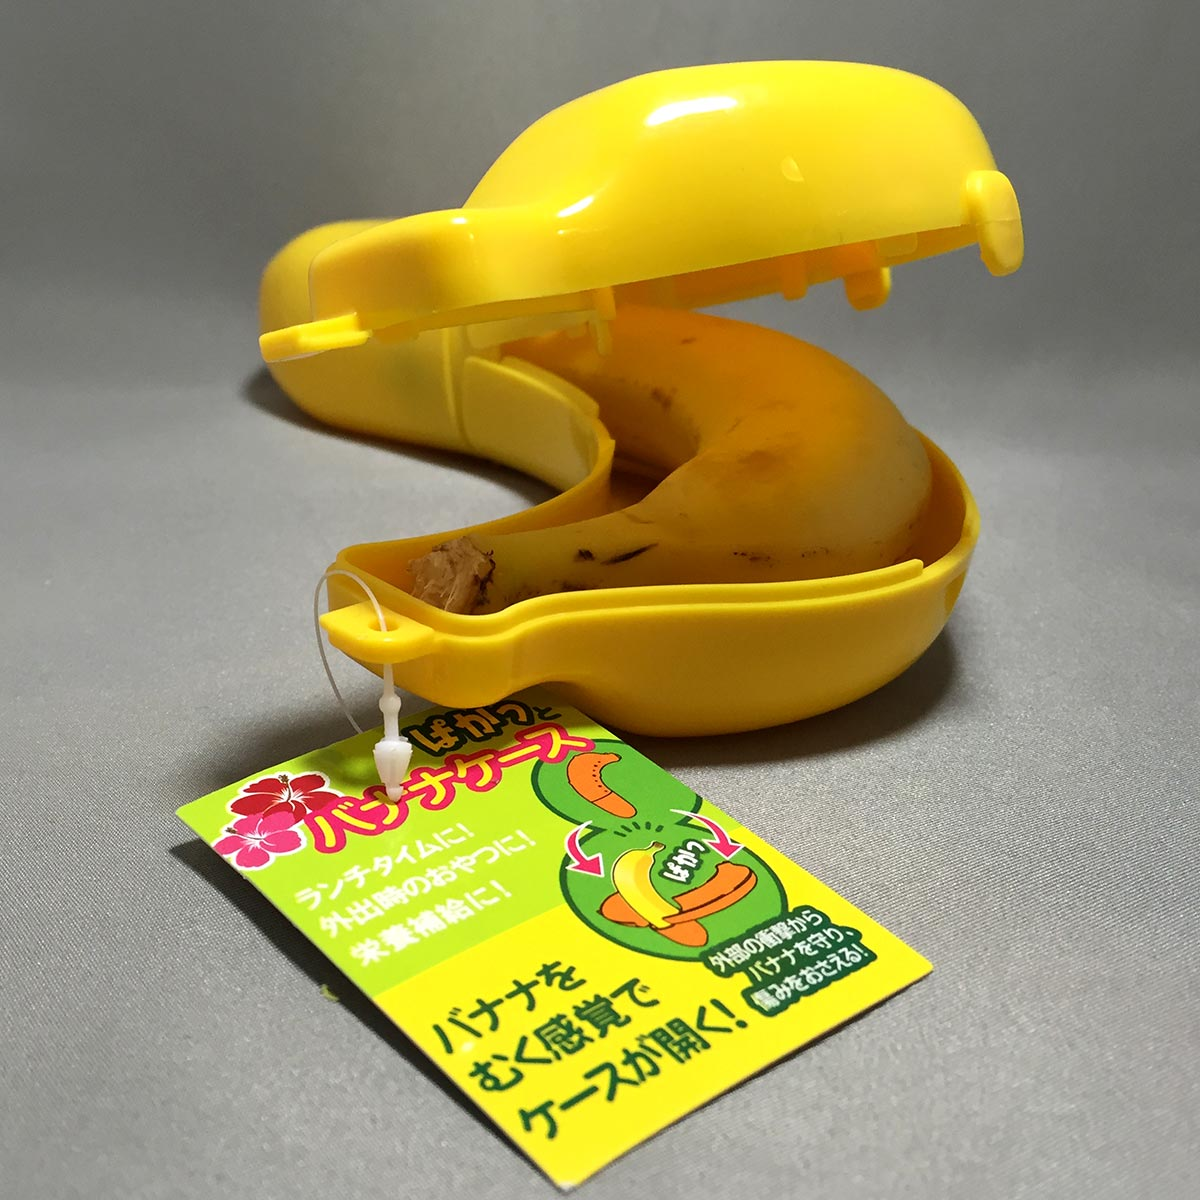 Flip Open Banana Case - banana inside 2